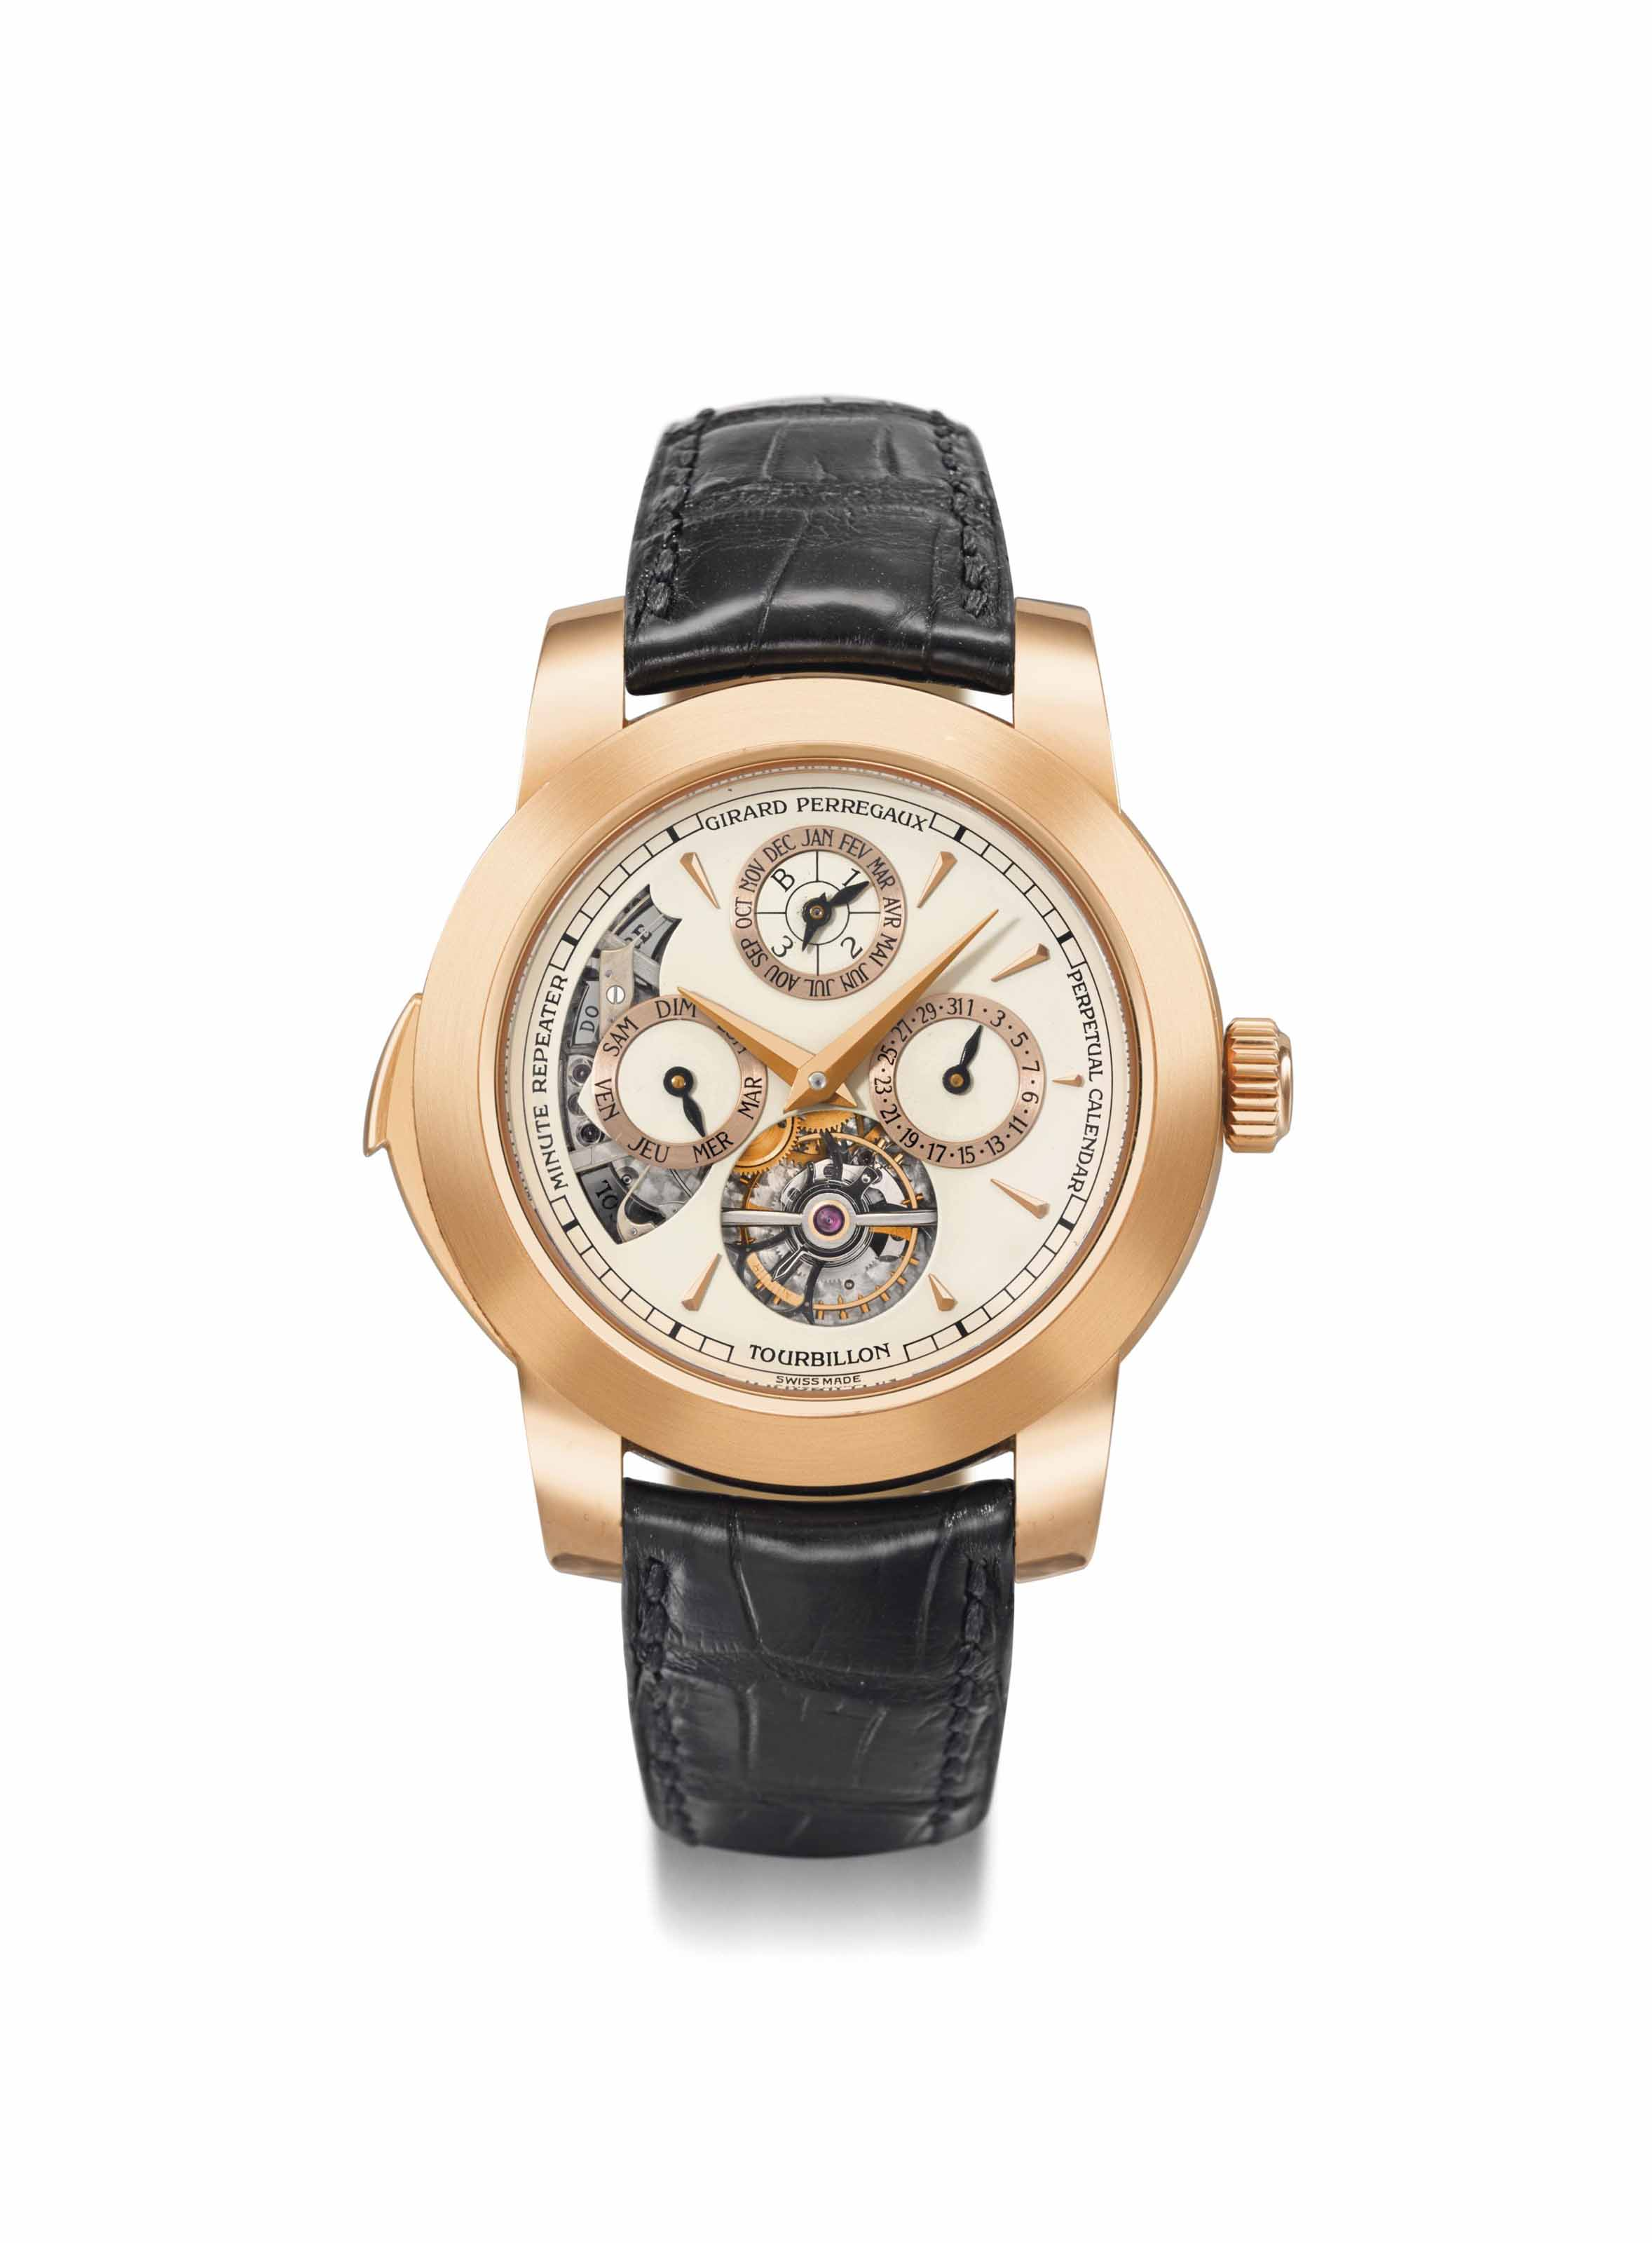 Girard-Perregaux. An extremely rare and important 18K pink gold perpetual calendar minute repeating three gold bridges tourbillon wristwatch with Westminster carillon chimes, leap year indicator, Certificate of Authenticity and wooden resonance box